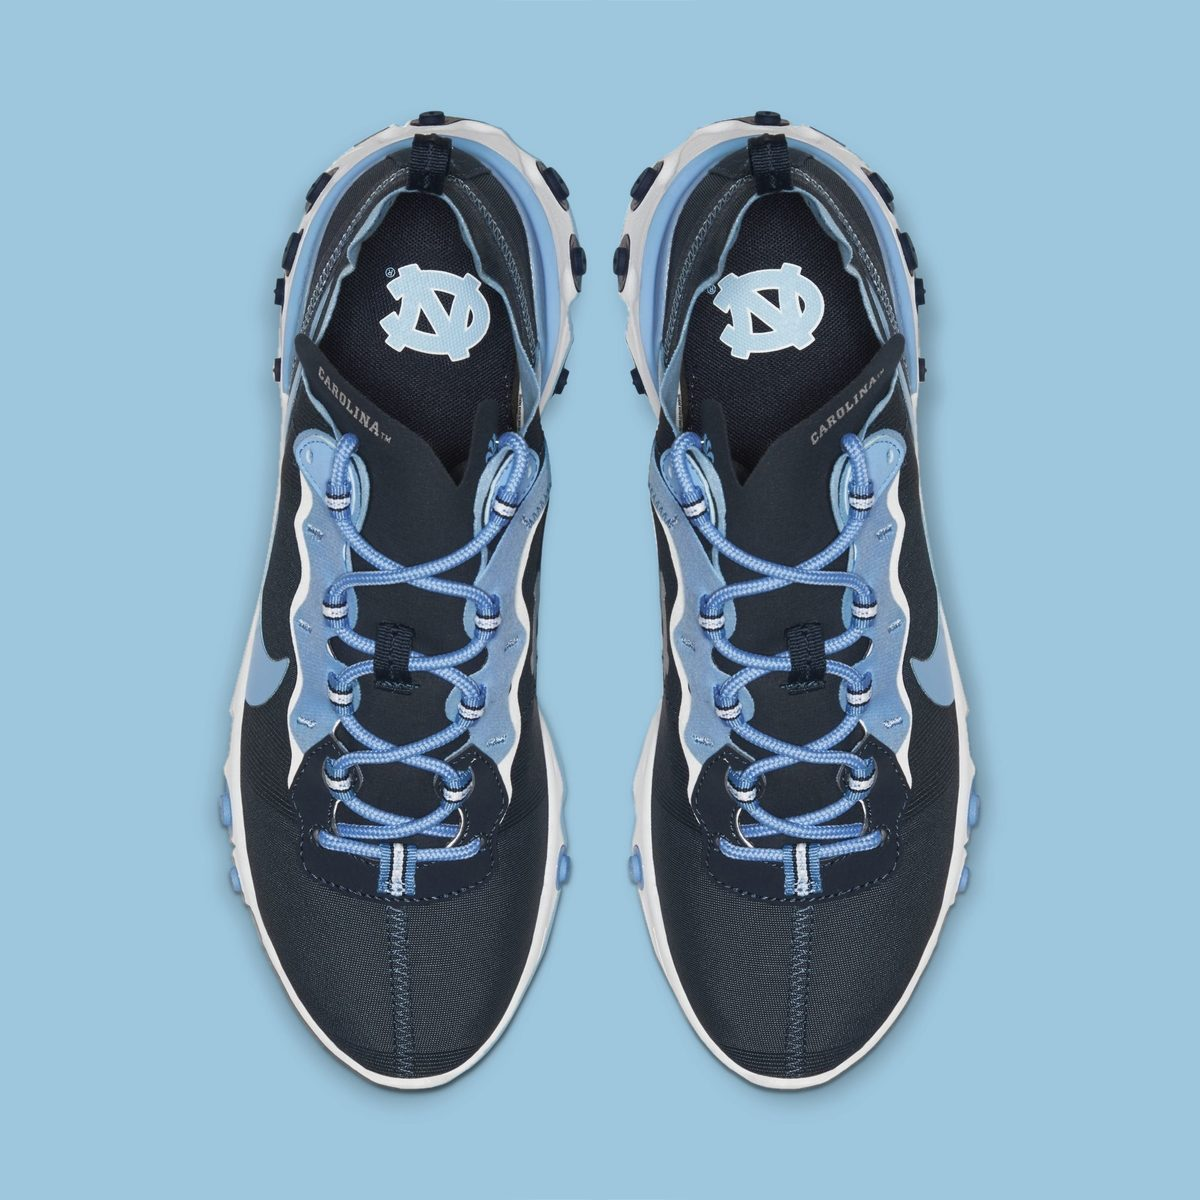 Espere Fabricante Abrazadera  UNC Join Nike's Rapidly Growing NCAA React Element 55 Collection -  Evesham-nj | Sneaker News, Release Dates and Features